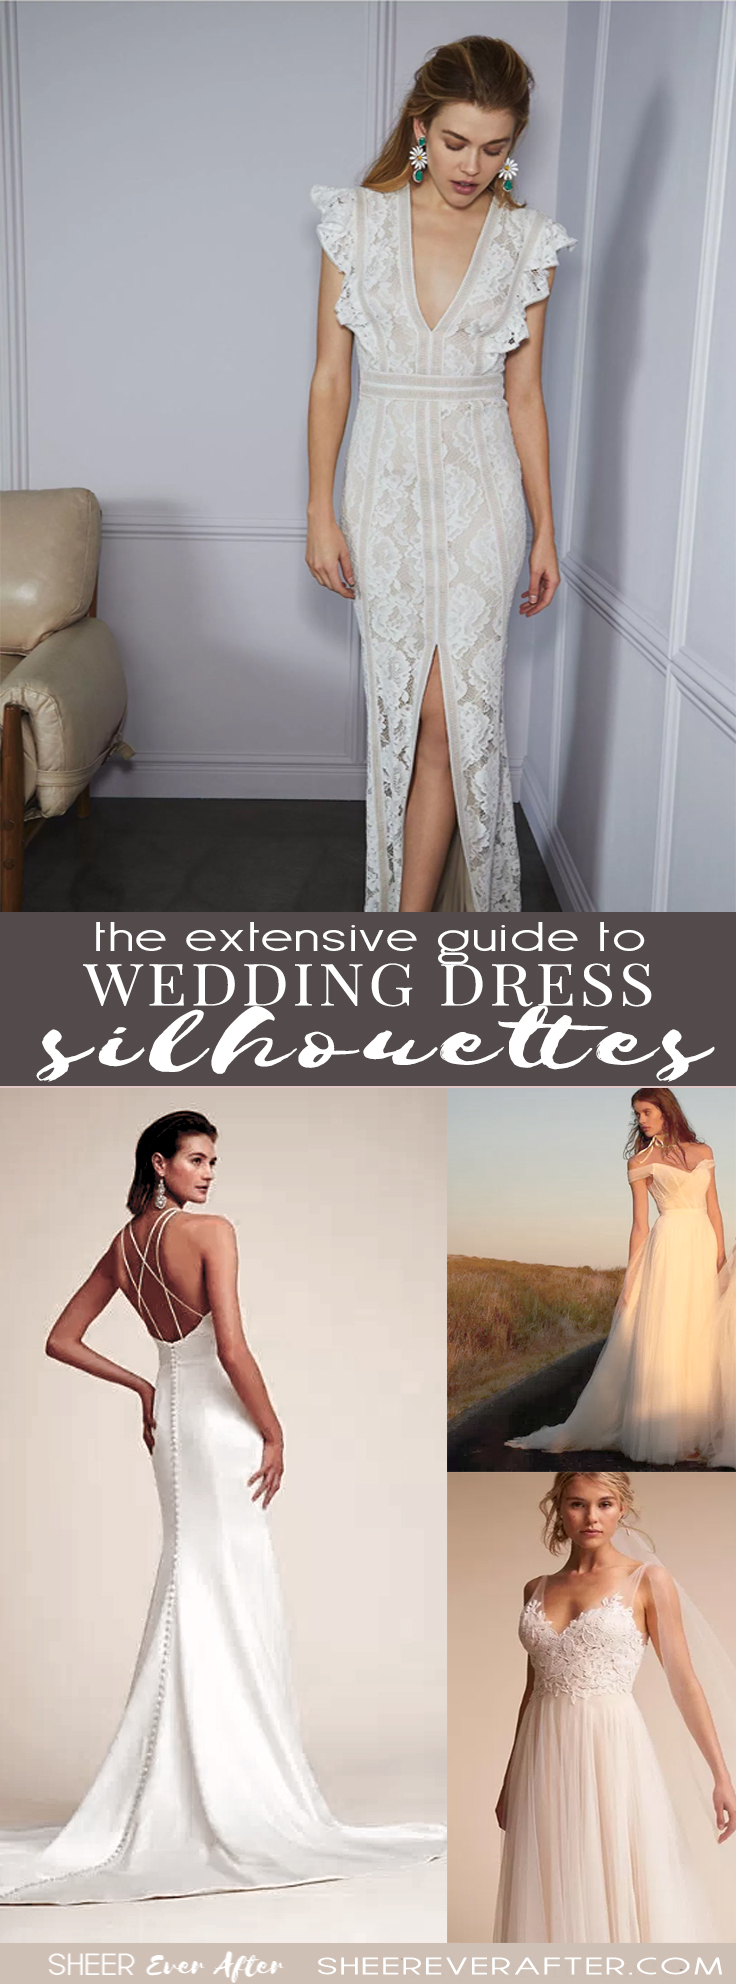 A guide to wedding dress silhouettes | By Sheer Ever After weddings | www.sheereverafter.com